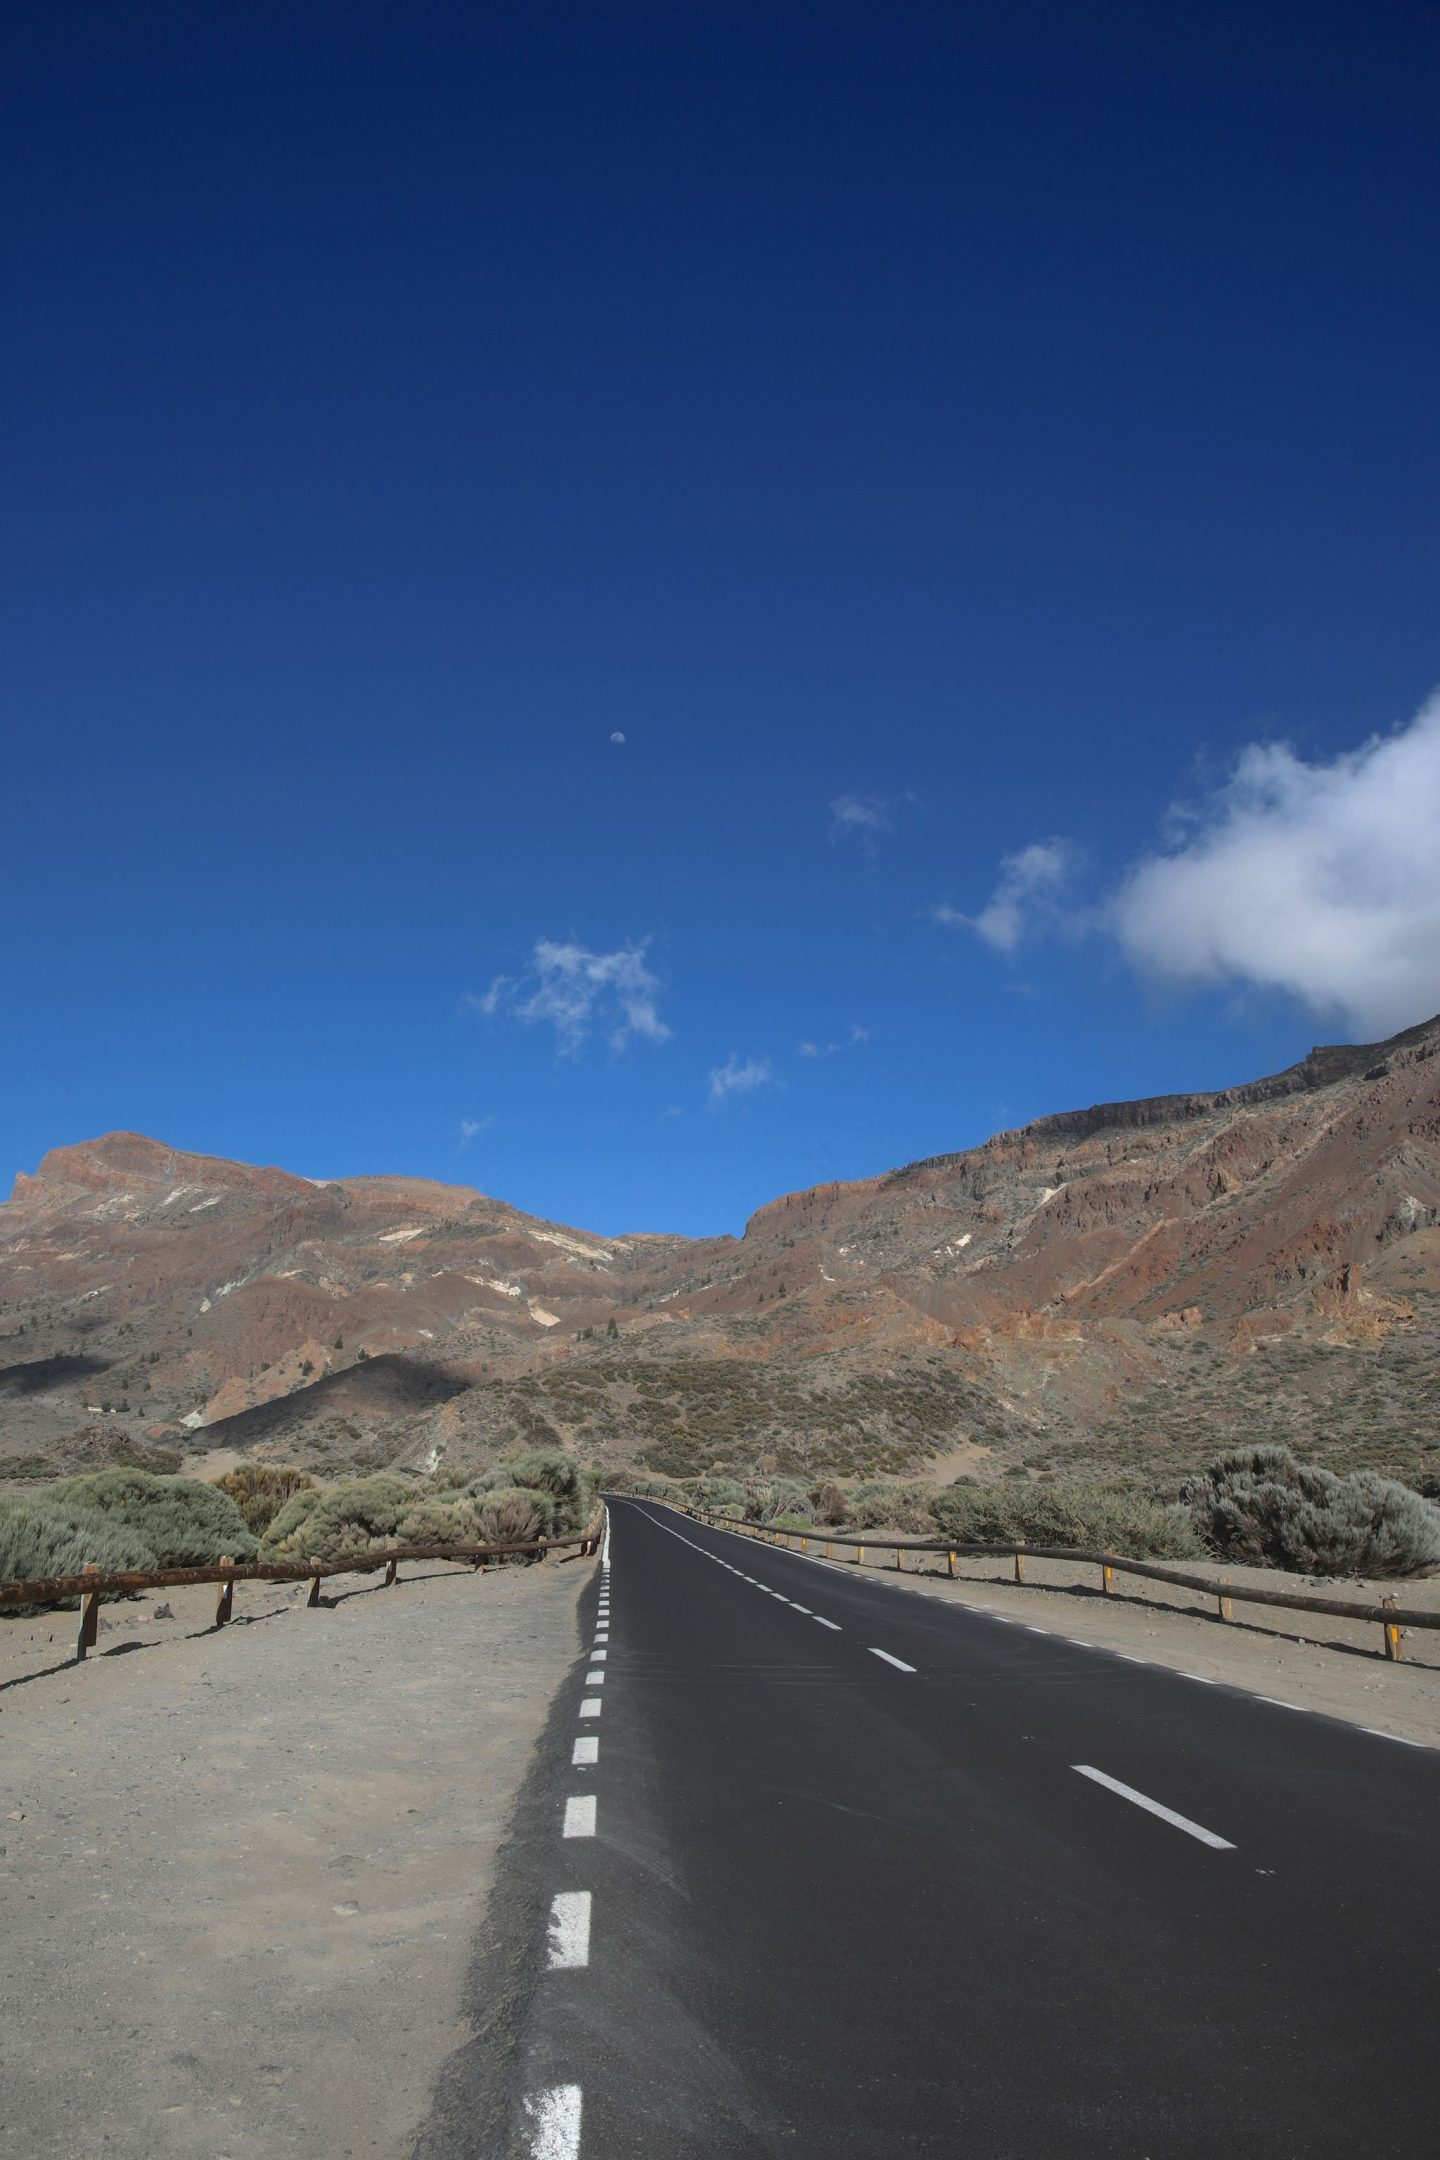 El Teide National Park, Tenerife, Canary Islands, Katie Heath, KALANCHOE